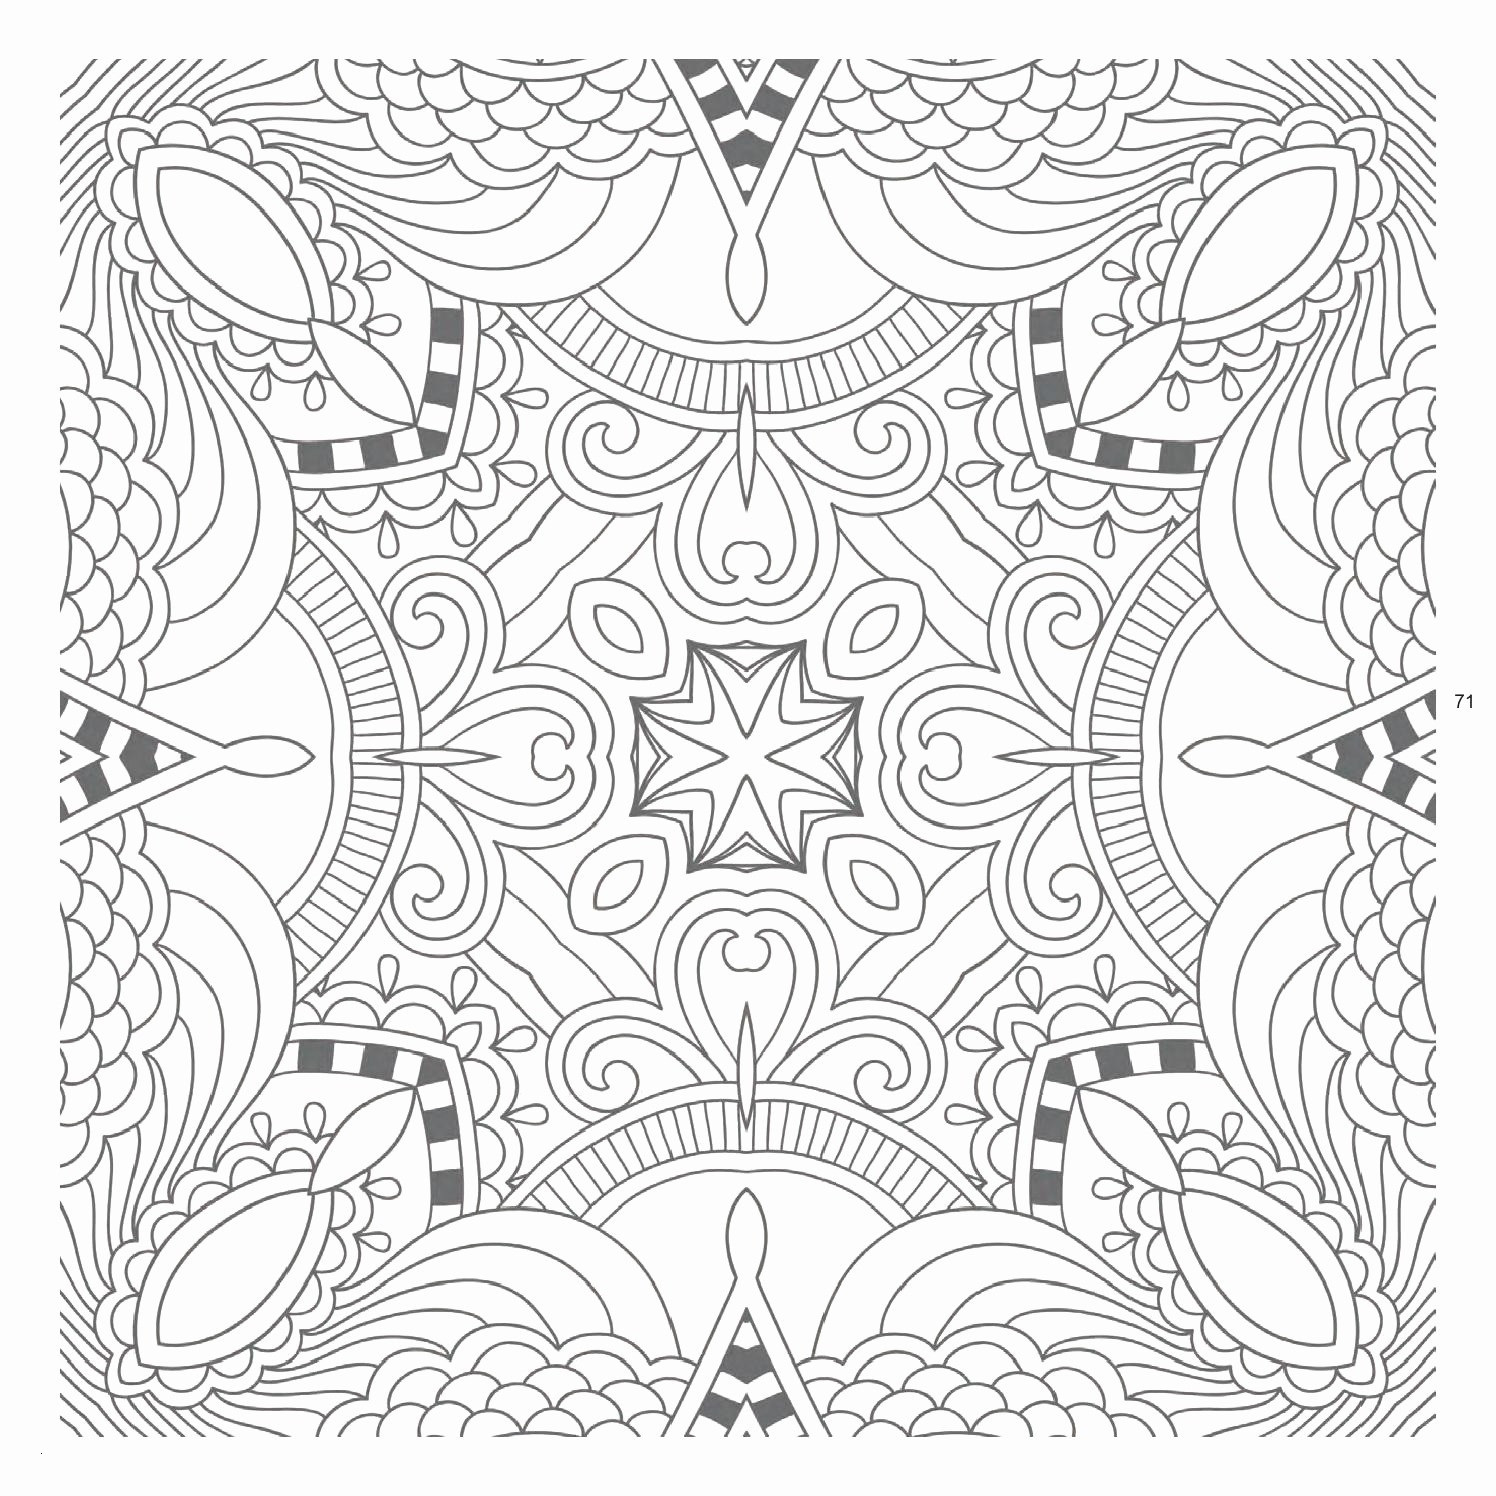 29 Intricate Mandala Coloring Pages Collection